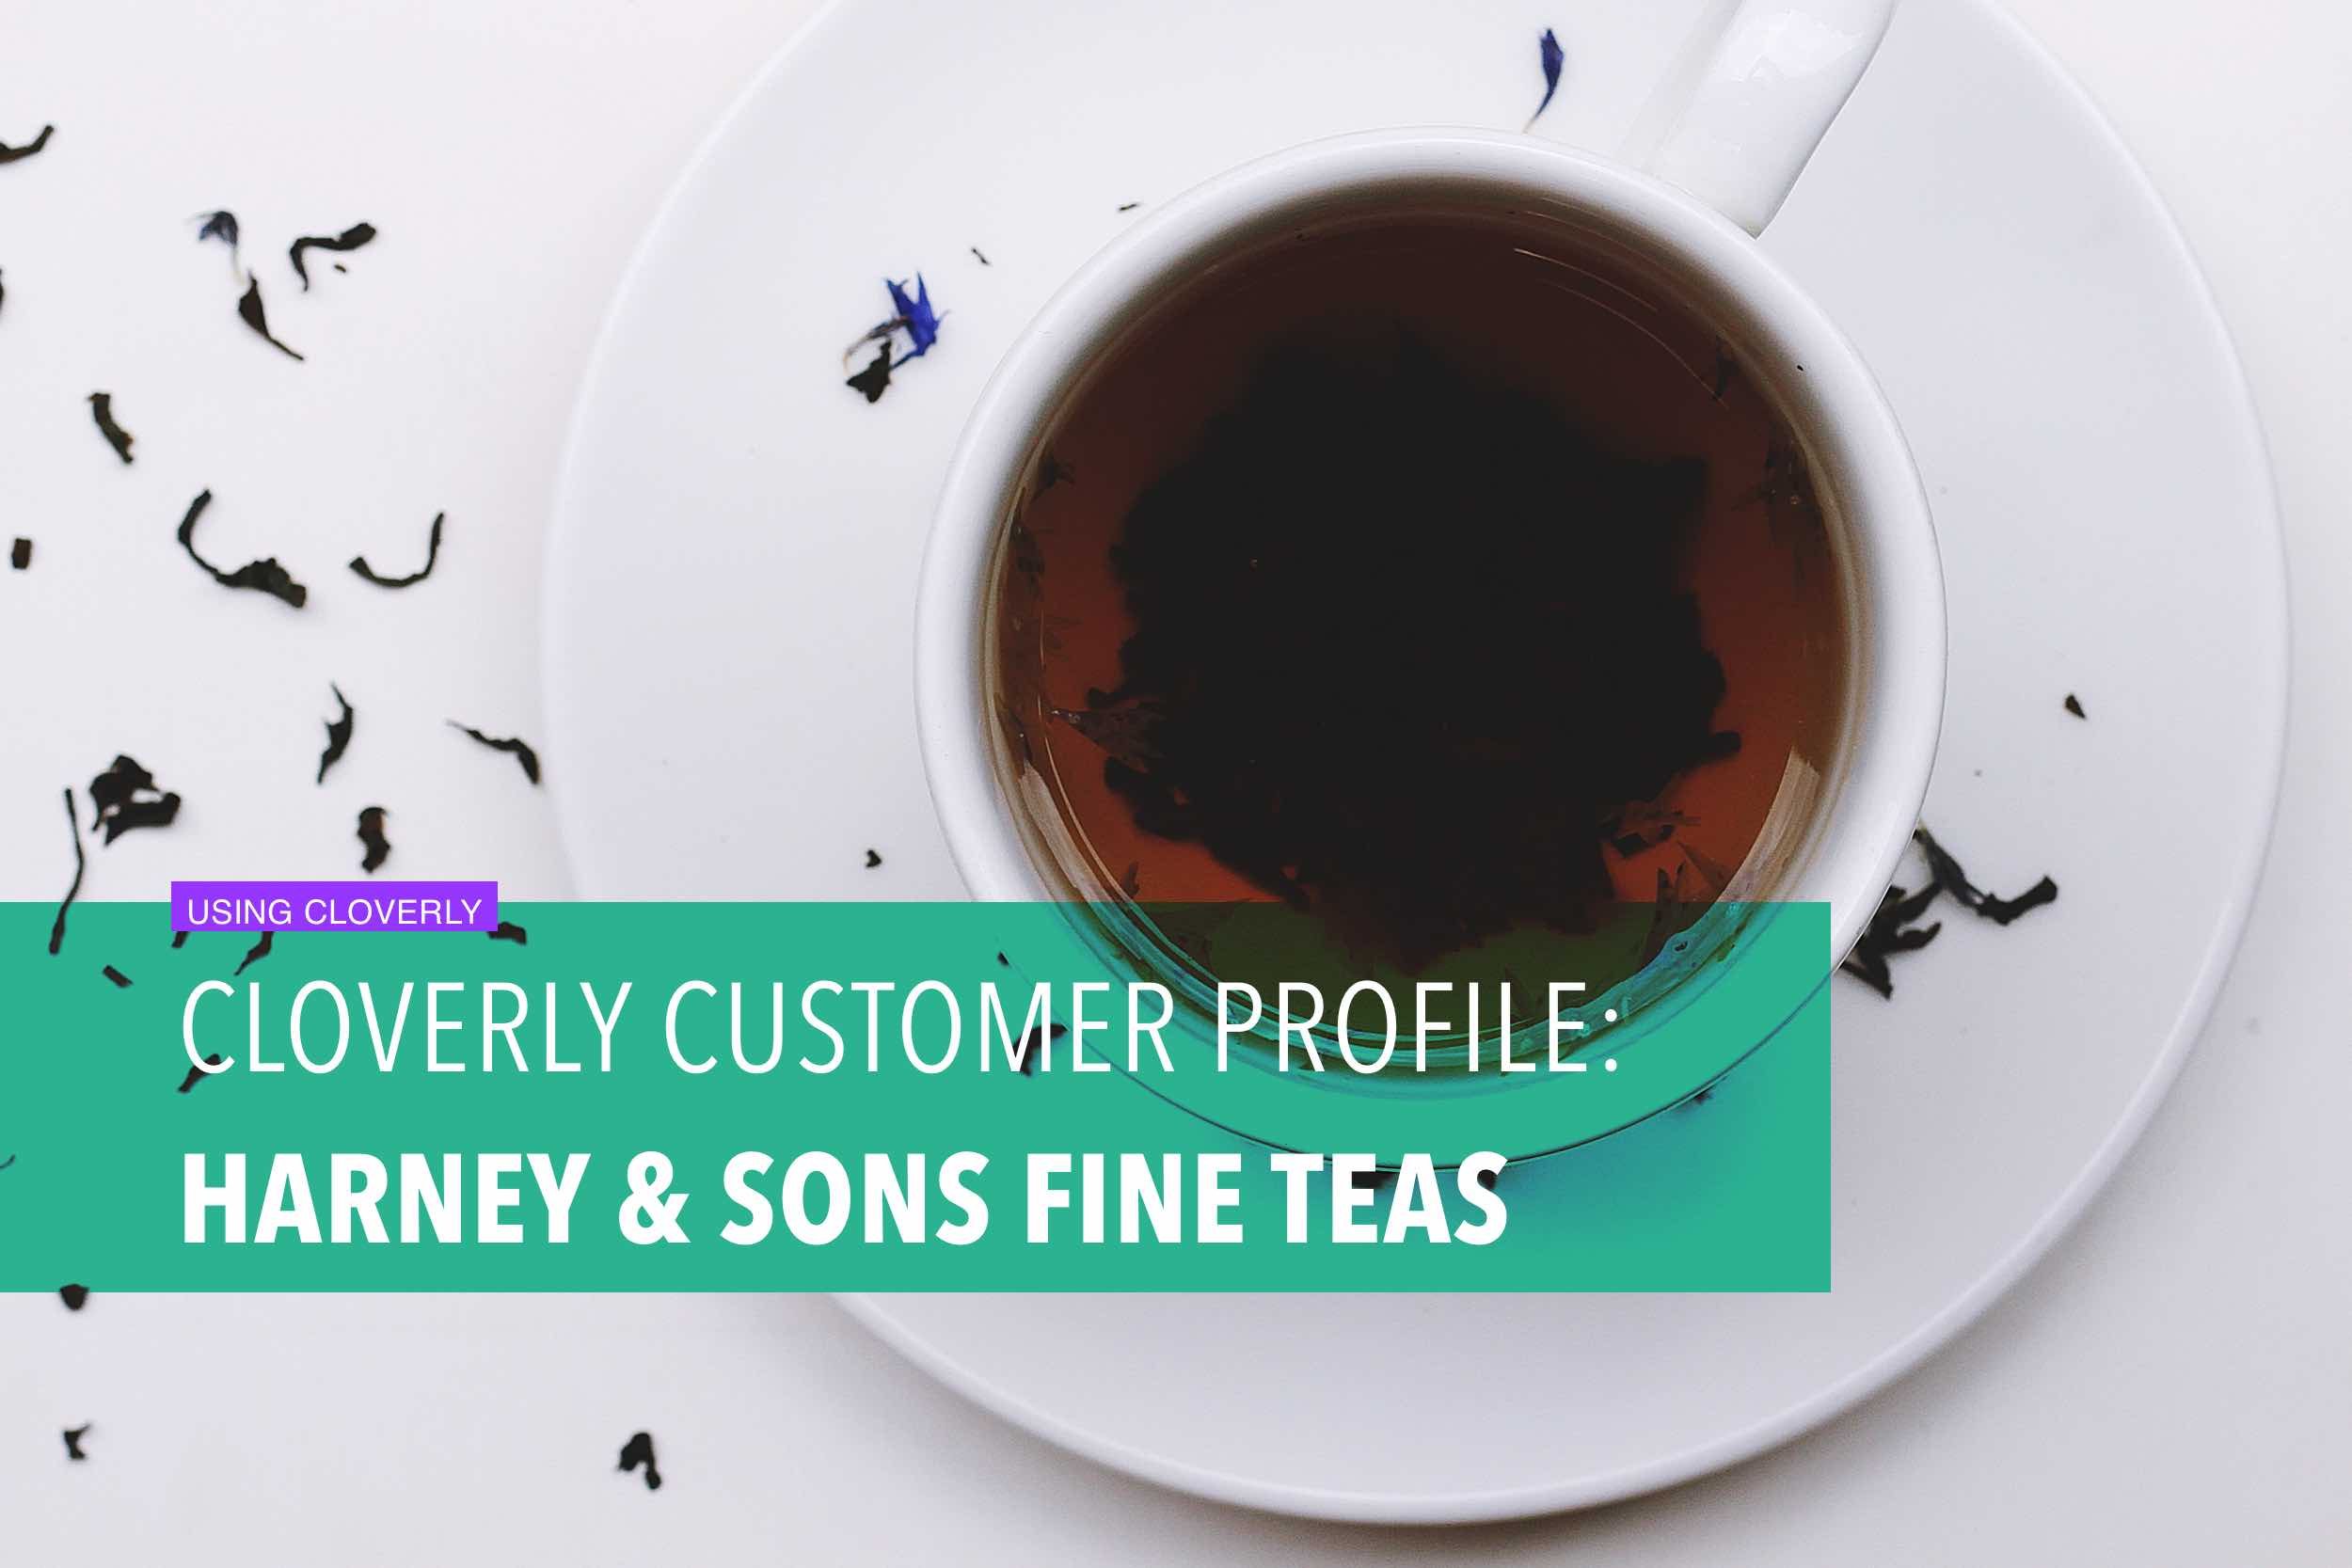 Cloverly customer profile: Harney & Sons Fine Teas